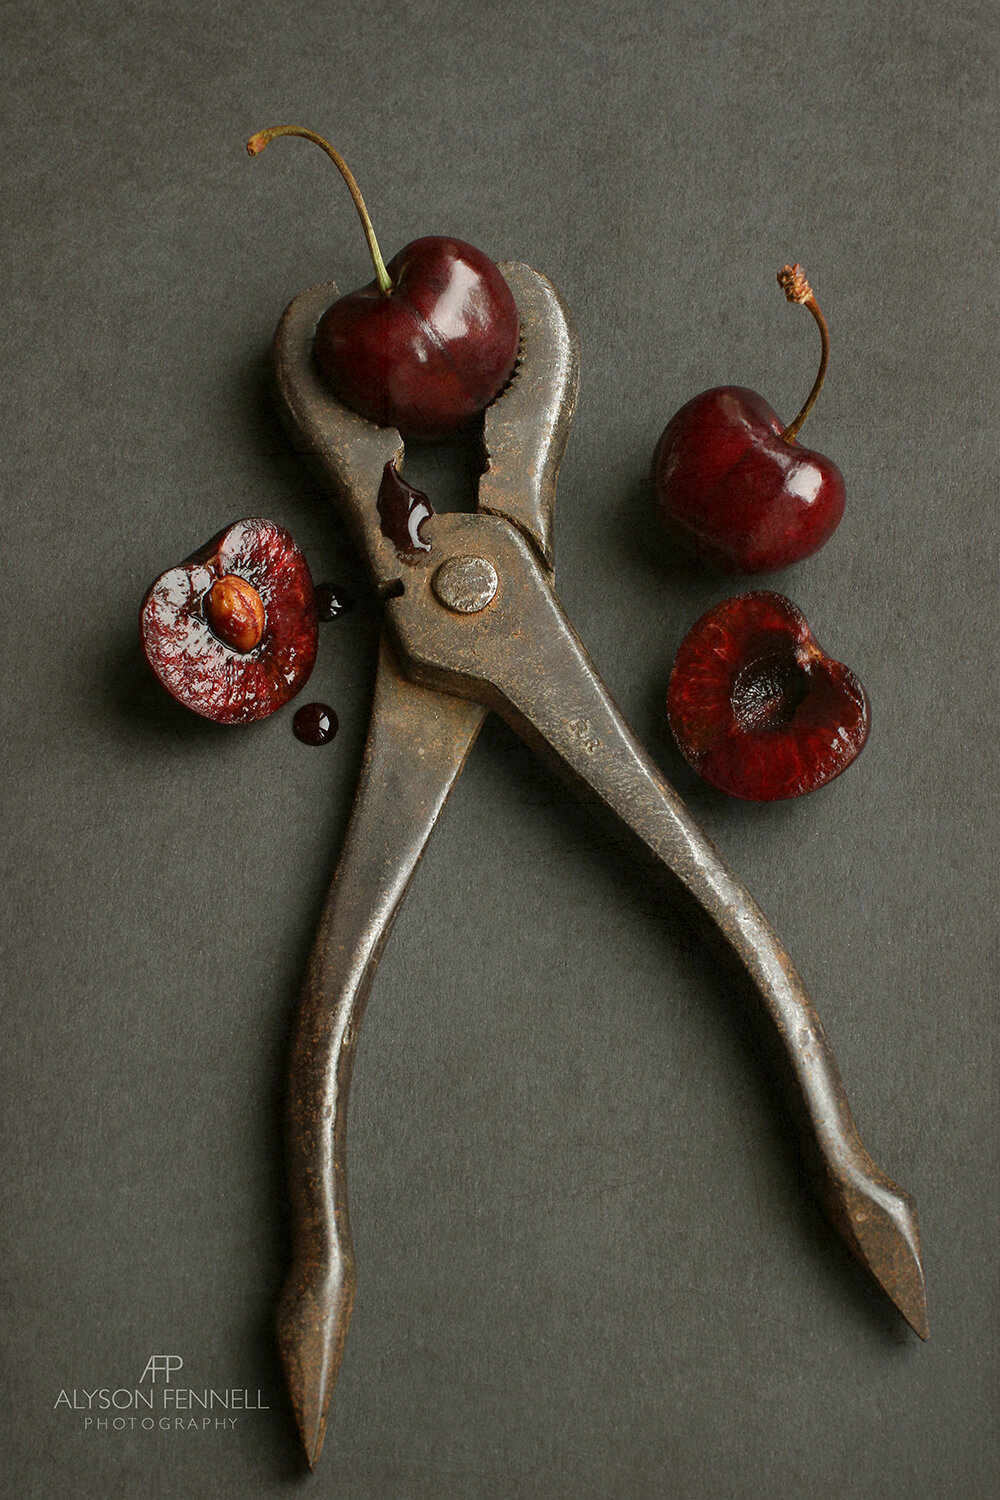 Cherries and Vintage Wrench